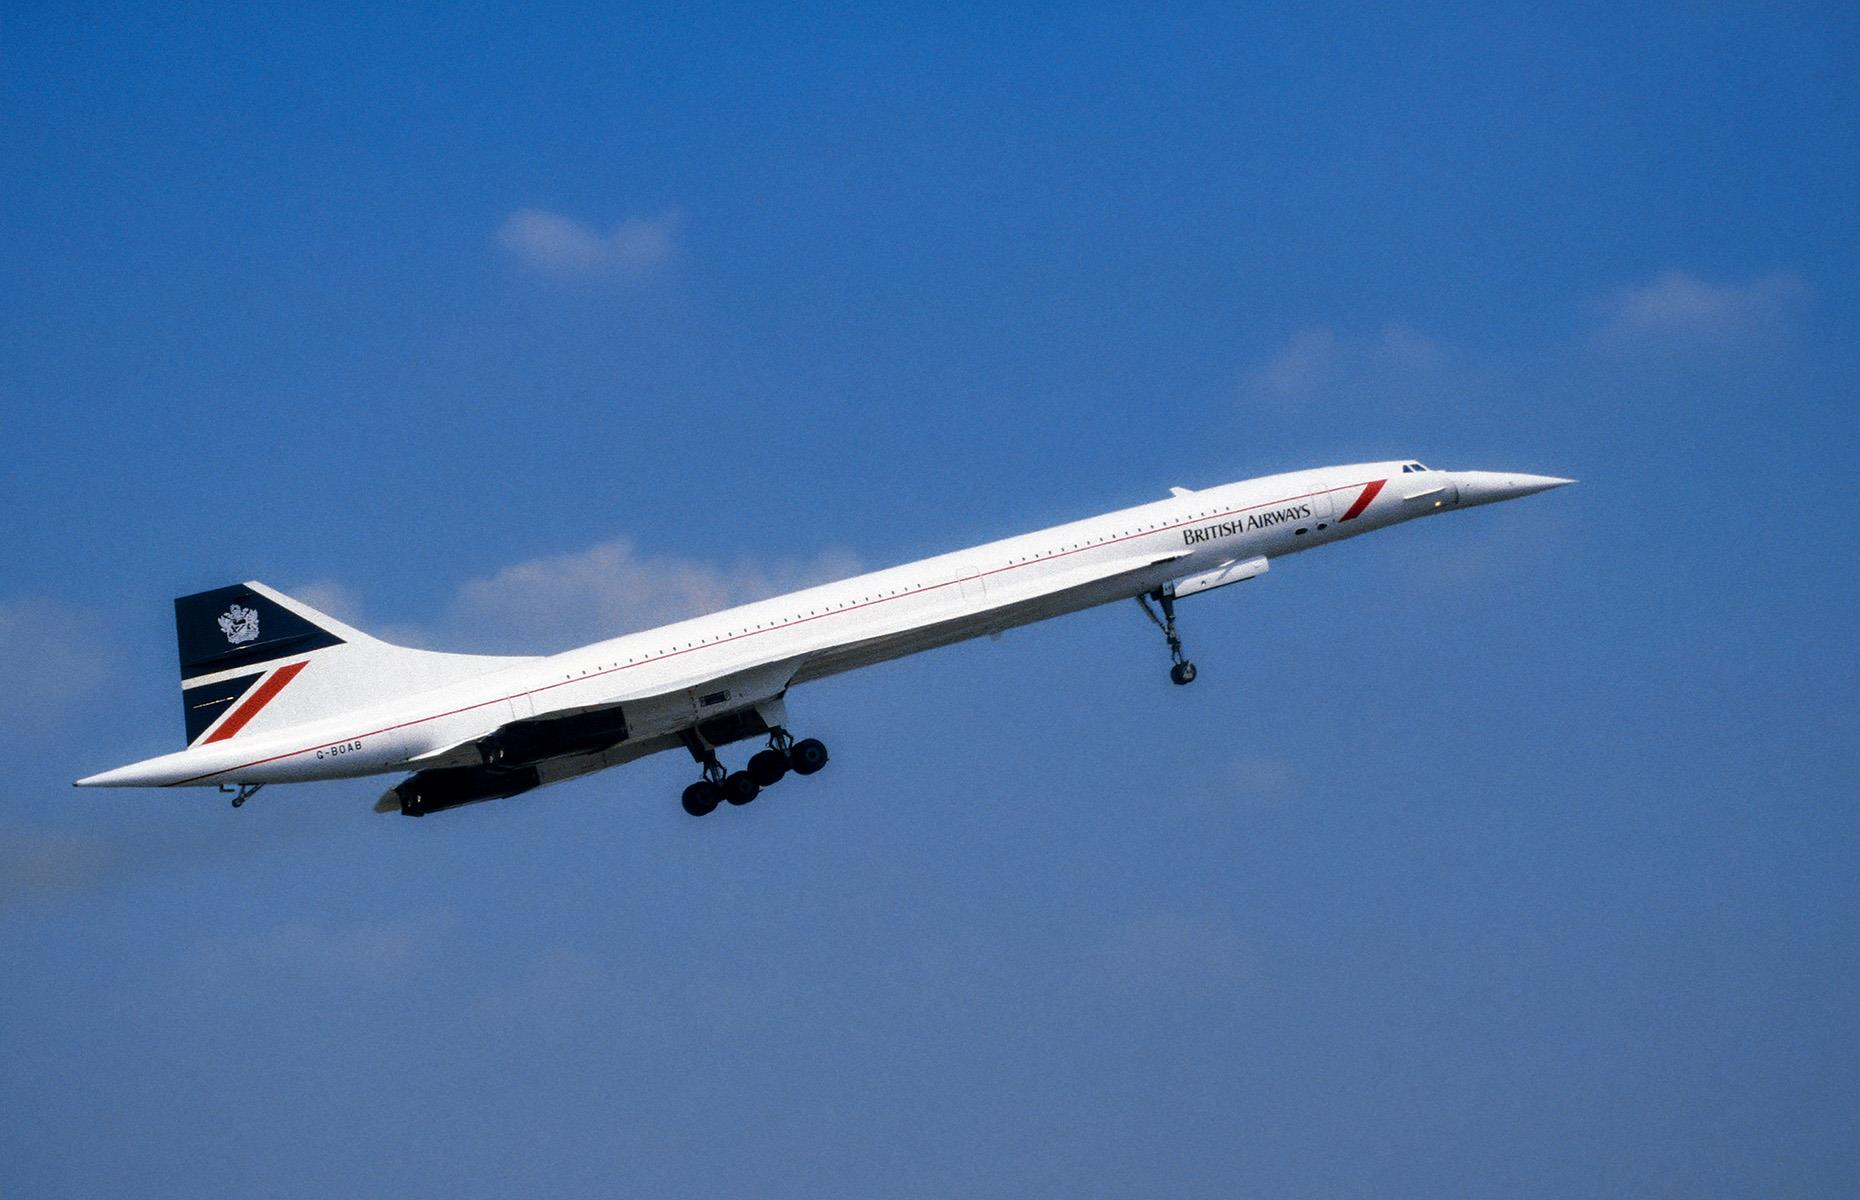 Slide 26 of 35: Concorde is the ultimate iconic airliner. A joint effort between British and French aero-engineering firms saw the world's first and only supersonic airliner take off 50 years ago in March 1969. Traveling faster than the speed of sound, Concorde could fly from London to New York City in just four hours. For three decades, it looked to change the world of air travel drastically with its luxurious, high-speed service. But in 2003 operation ceased and many of the aircraft are now on display in museums around the world, including in Bristol, England and Toulouse, France.